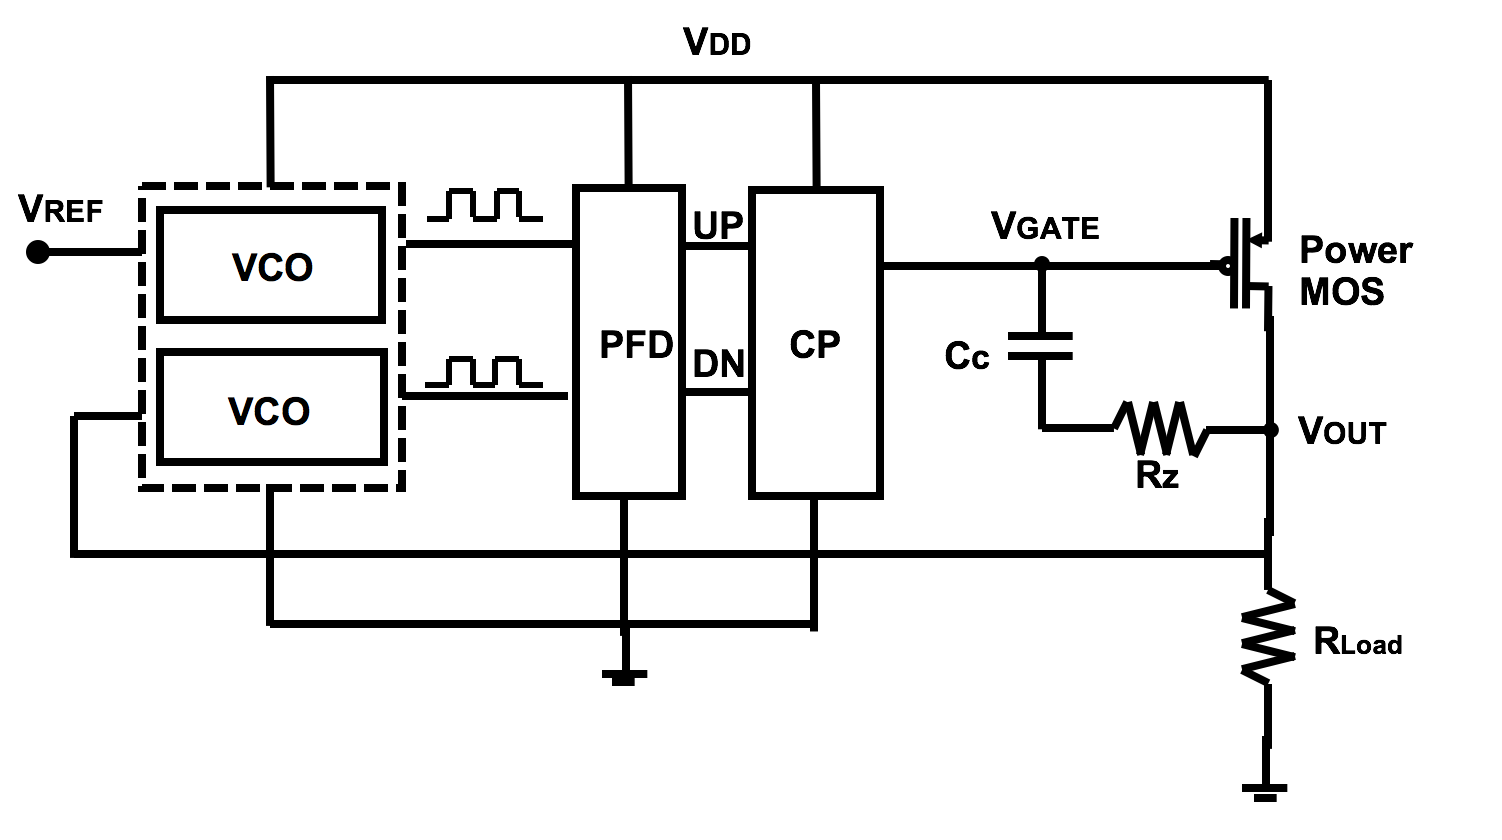 Analog Circuit Design In 2018 And Beyond Octopart Transistor Analogue Oscillator Circuits Frequency Based Voltage Regulator It Replaces Op Amp With